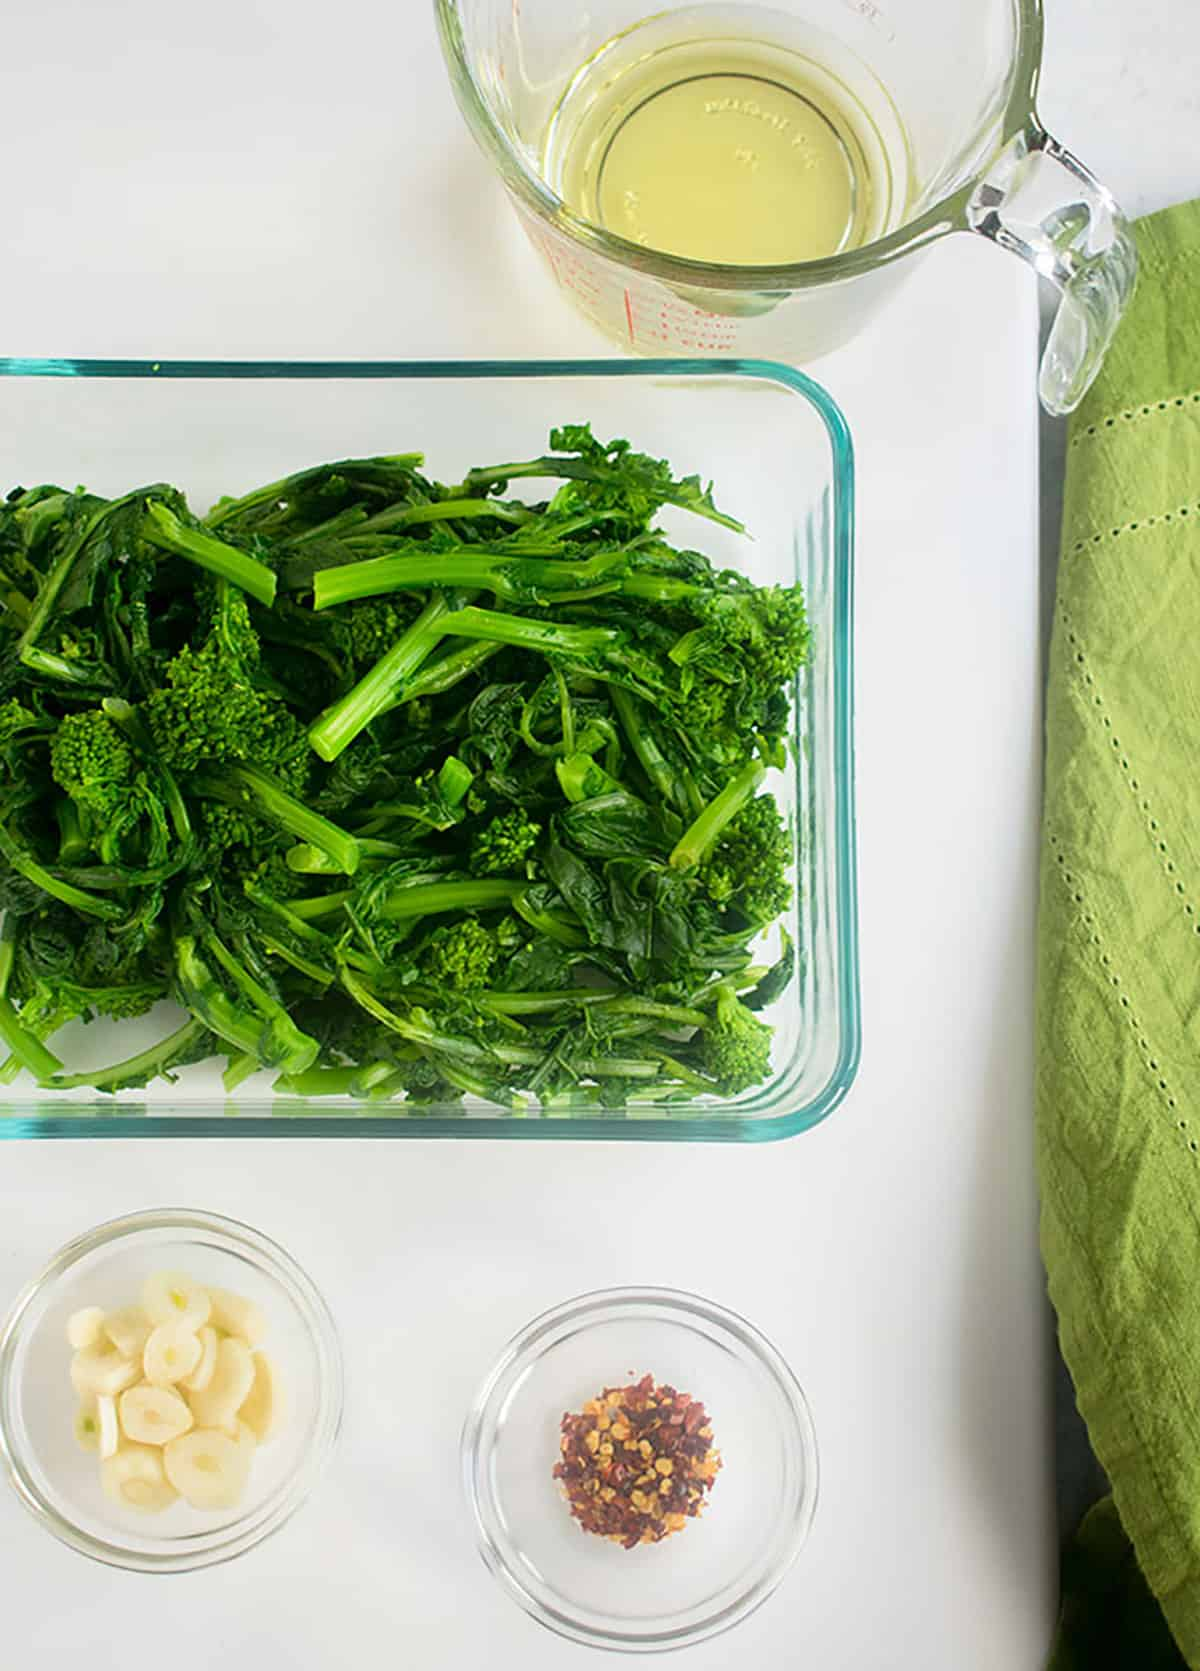 oil, boiled rapini, garlic slices, red pepper flakes